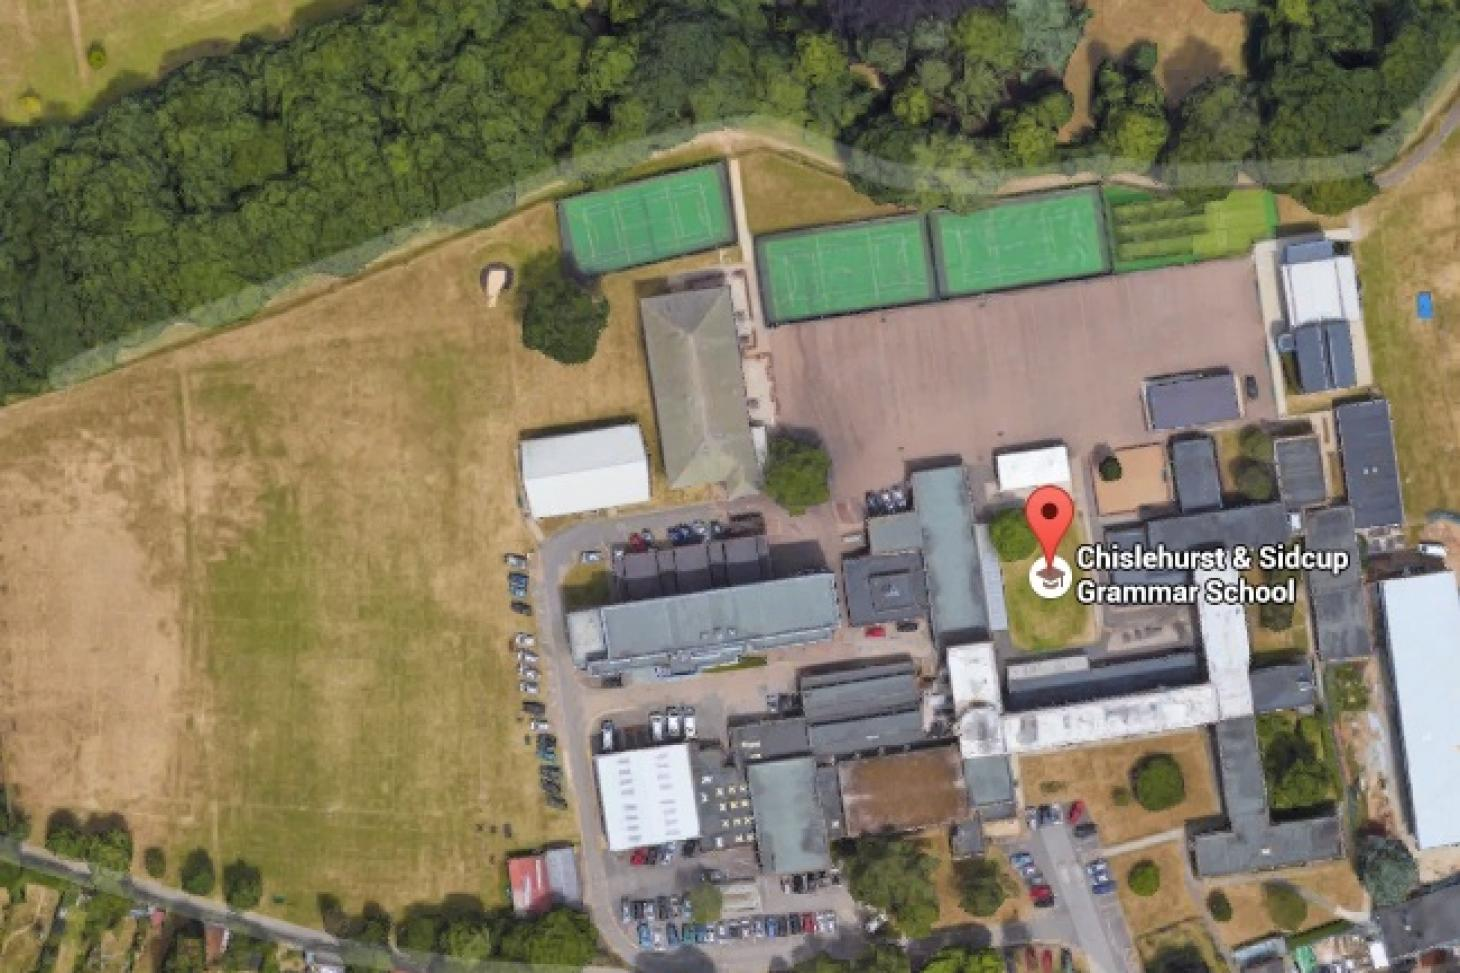 Chislehurst & Sidcup Grammar School Full size | Grass cricket facilities